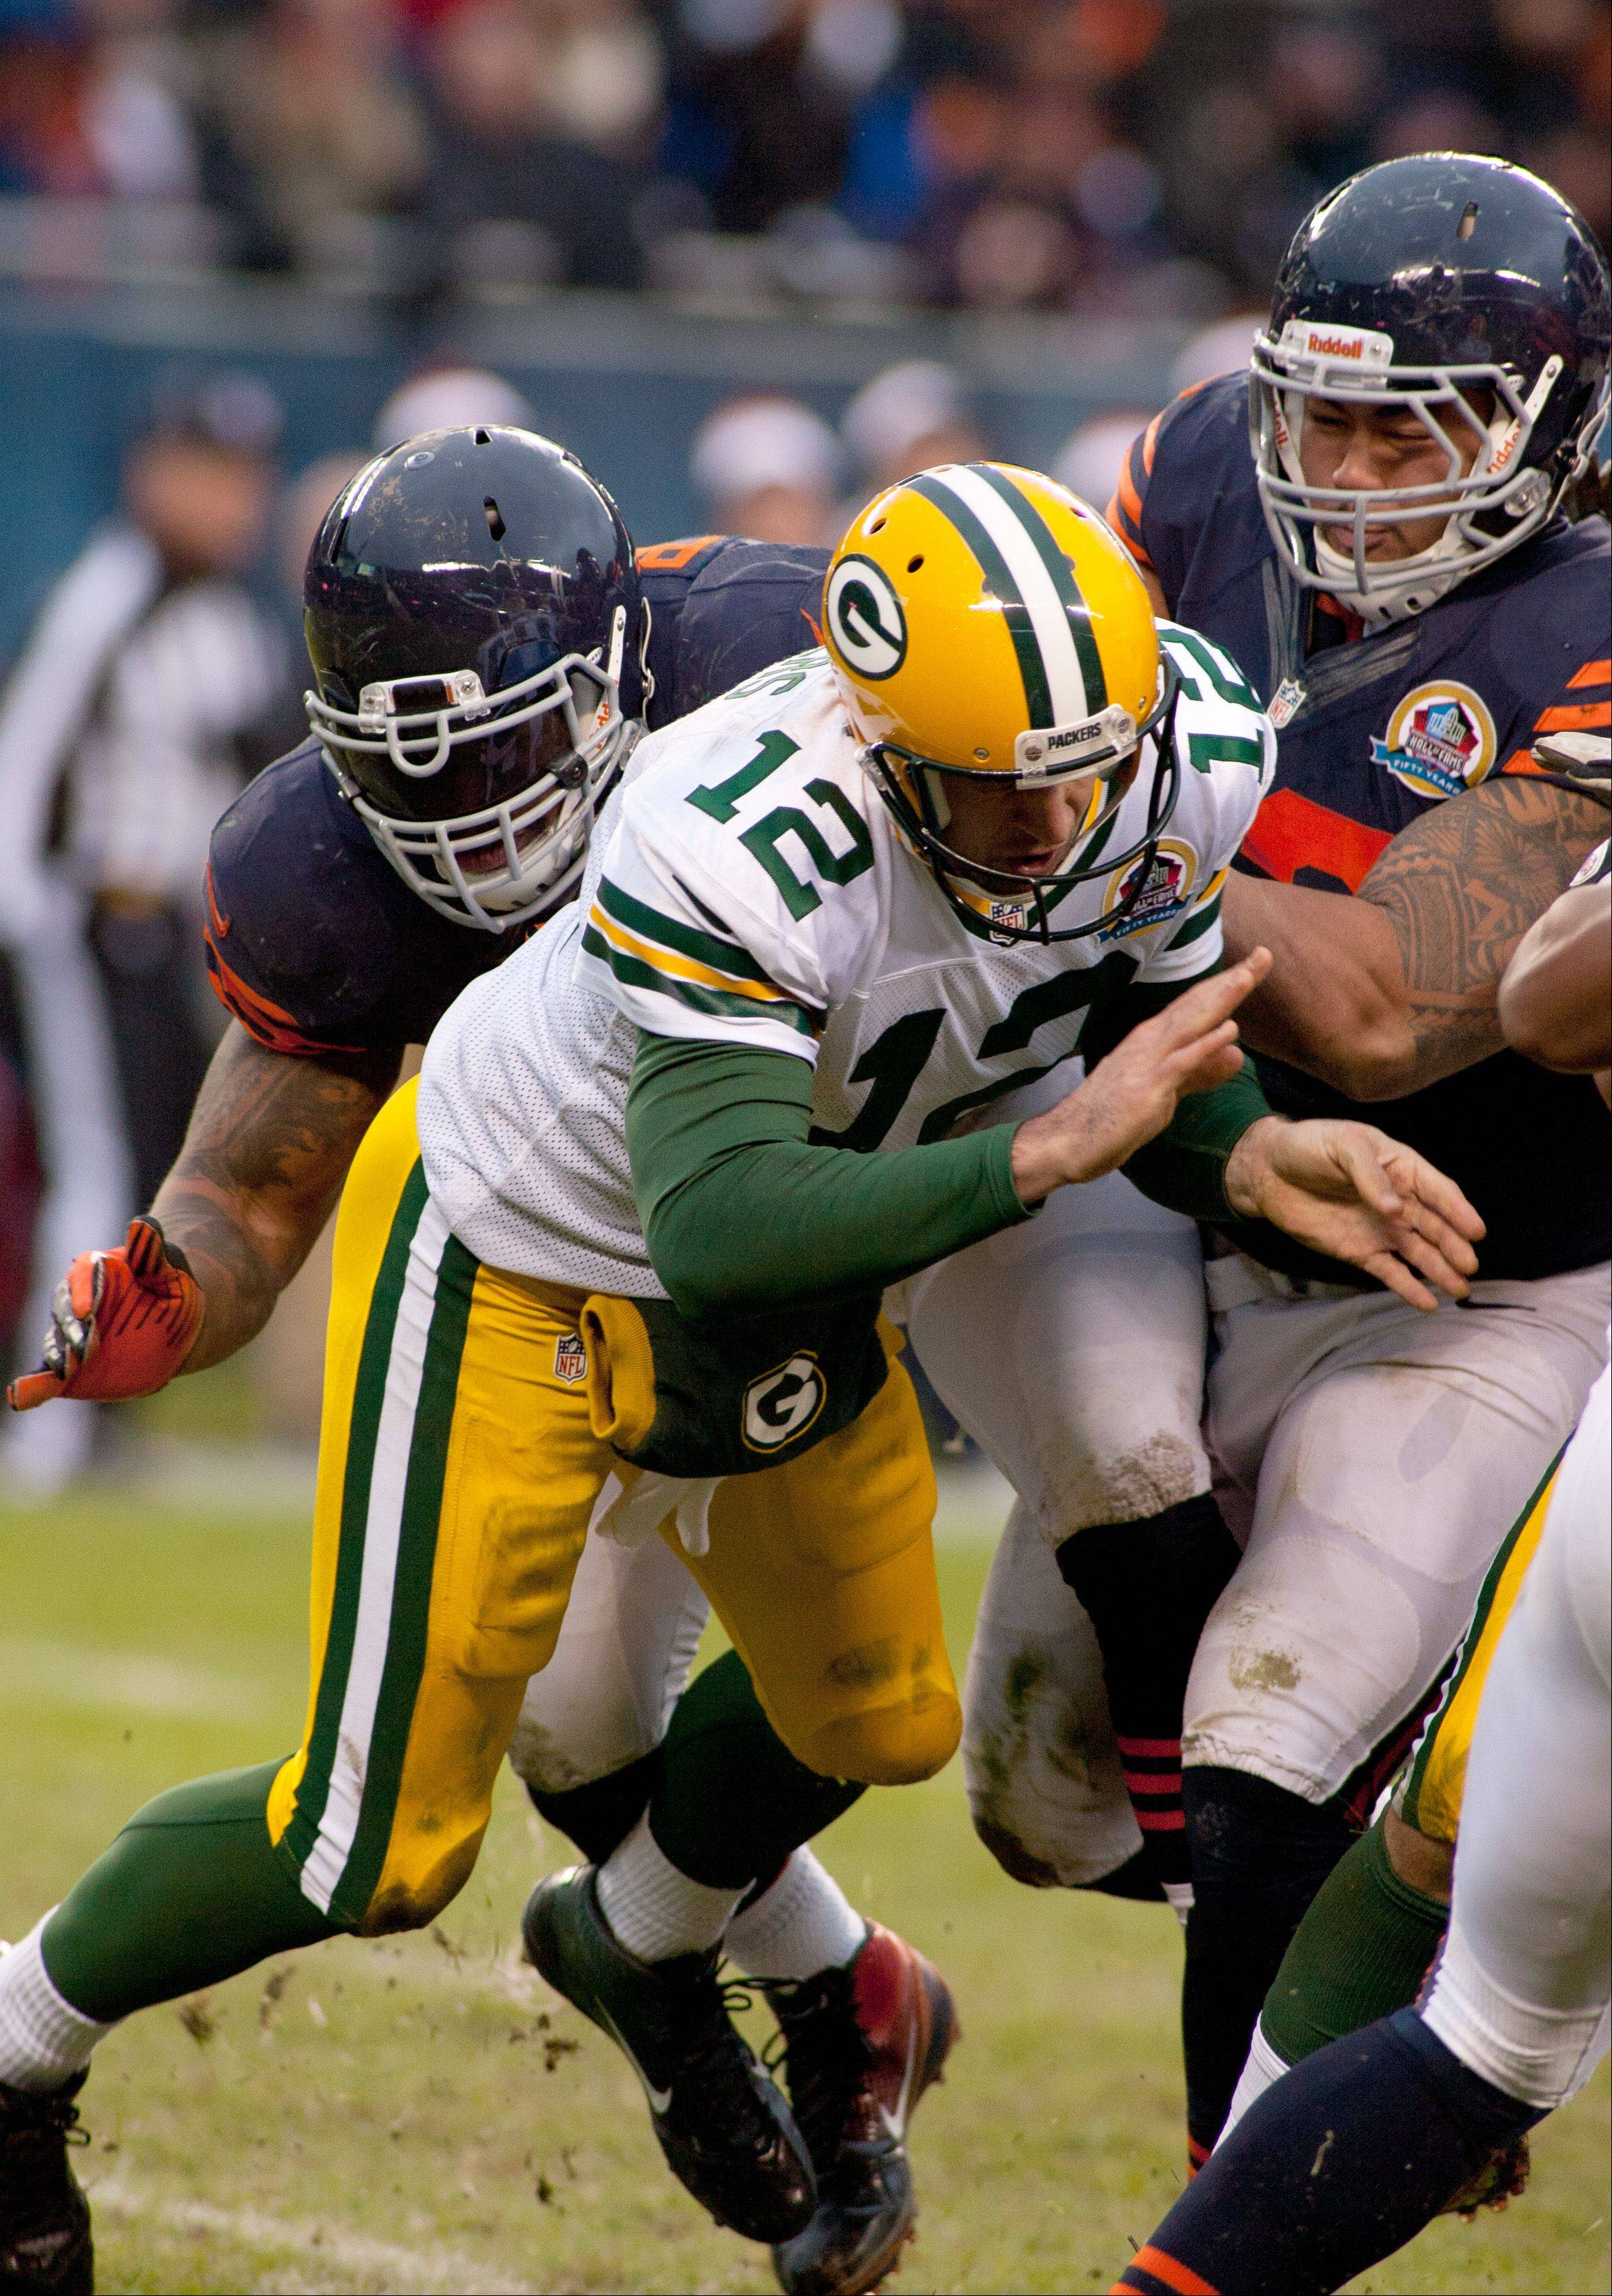 The Packer�s Aaron Rodgers is hit by the Bears� Julius Peppers, who was called for roughing the passer on the play, during Sunday�s game at Soldier Field in Chicago.